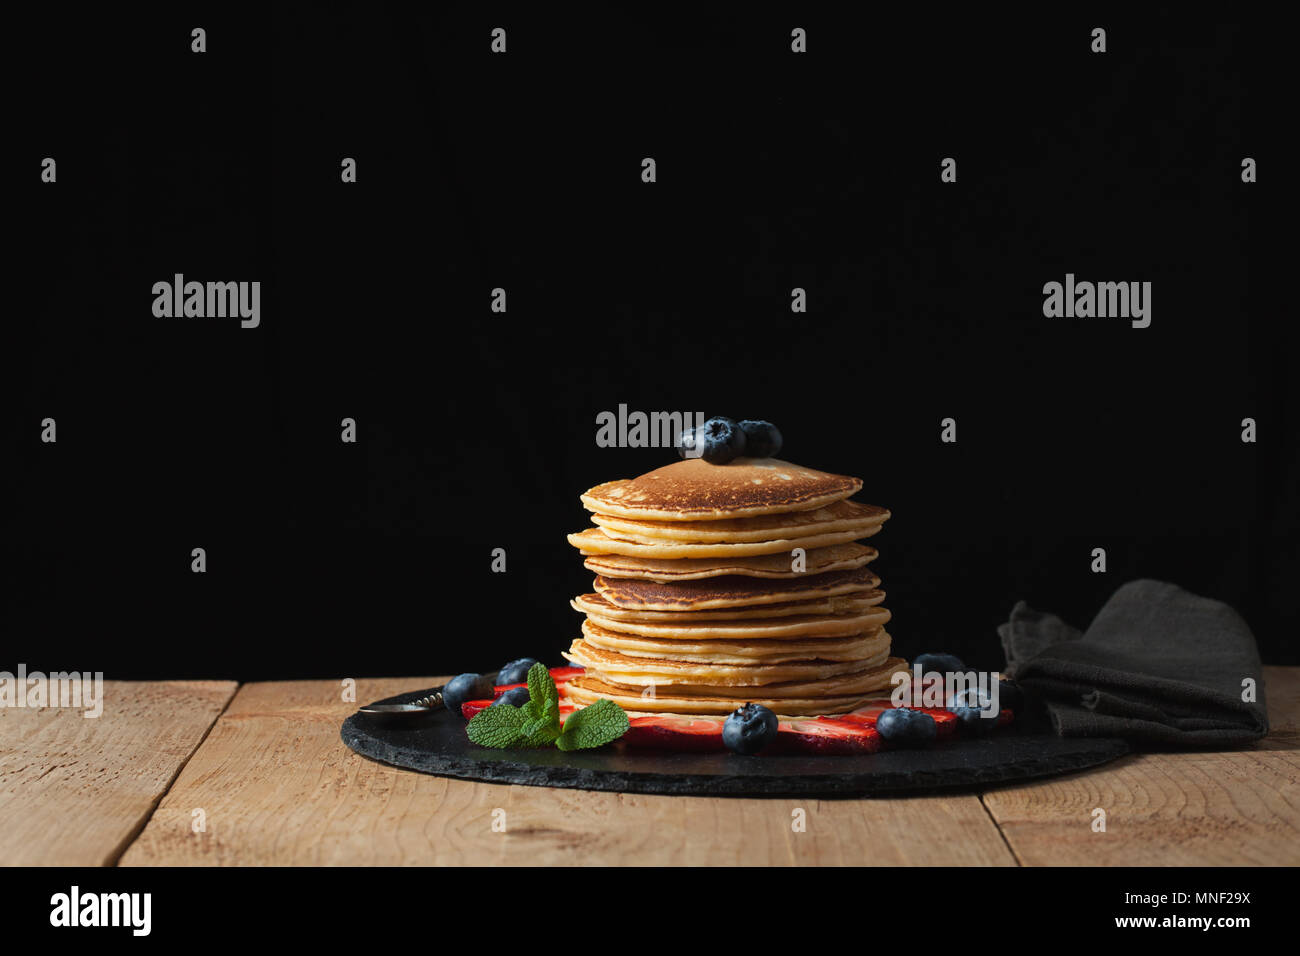 Front view of Stack of homemade plain pancakes with strawberries, blueberries and maple syrup served on black plate on black background with selective focus. With copy space - Stock Image